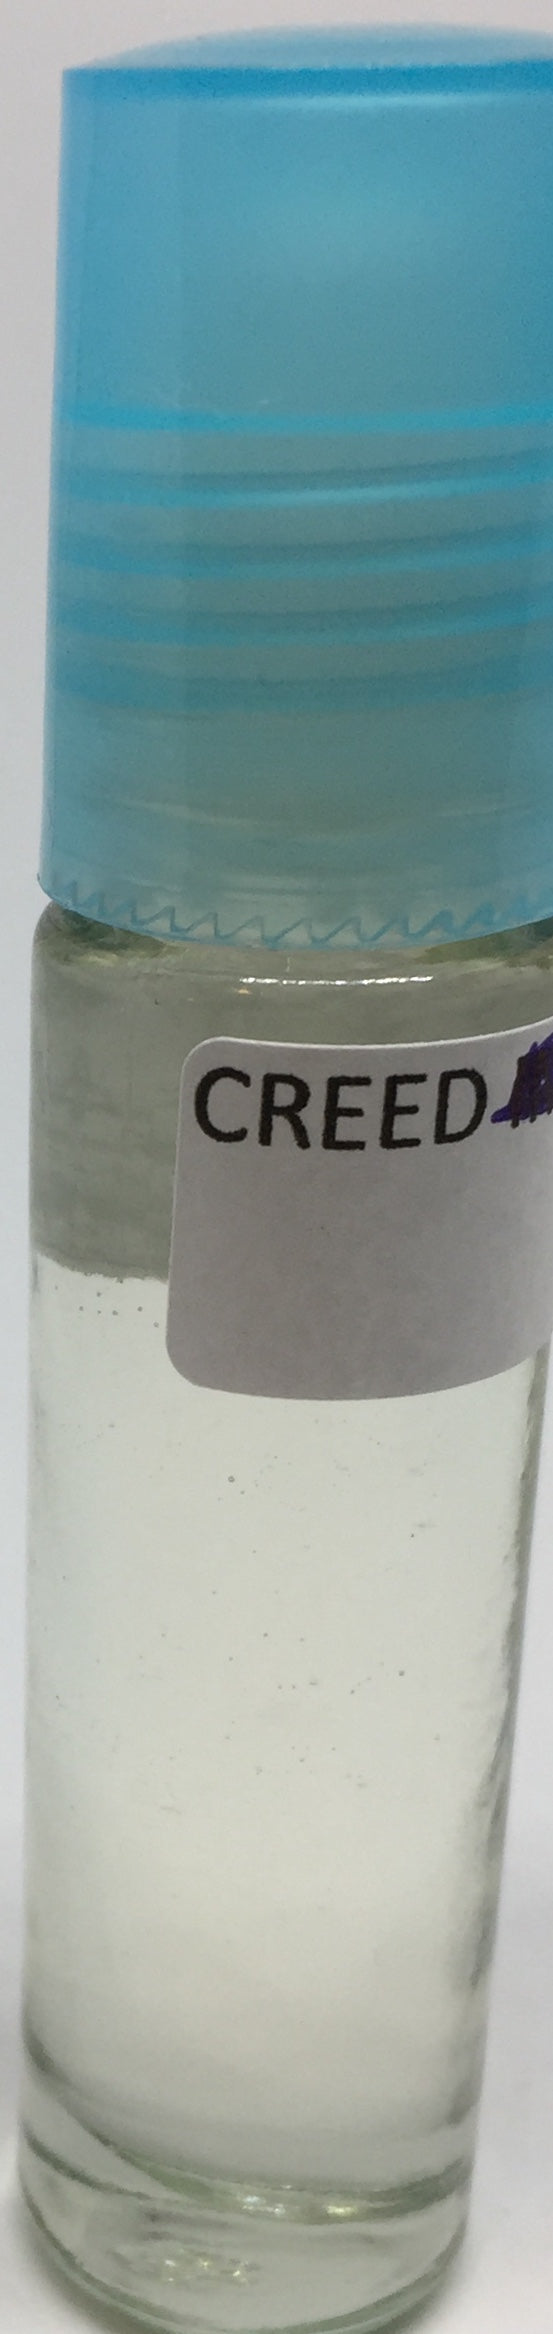 Creed: Fragrance(Perfume)Body Oil Men